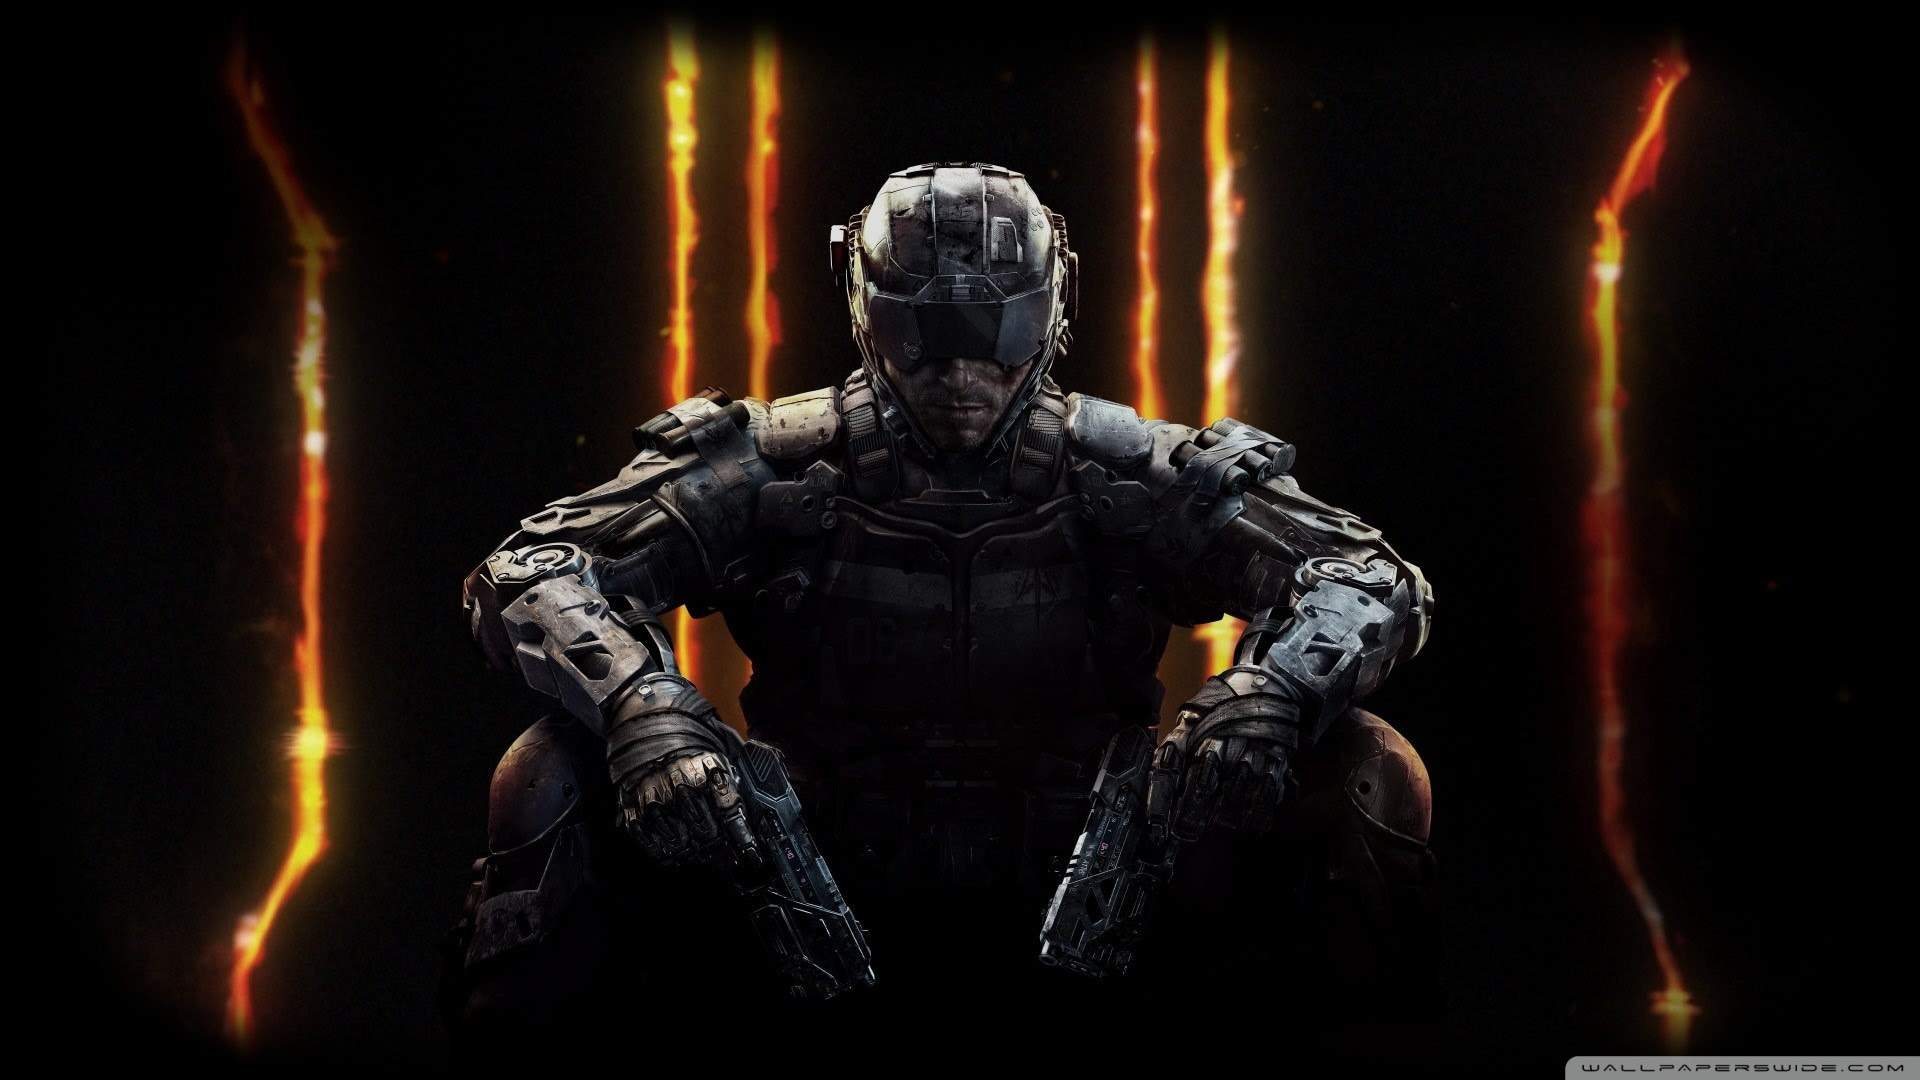 call of duty black ops 3 hd wide wallpaper for 4k uhd widescreen desktop smartphone